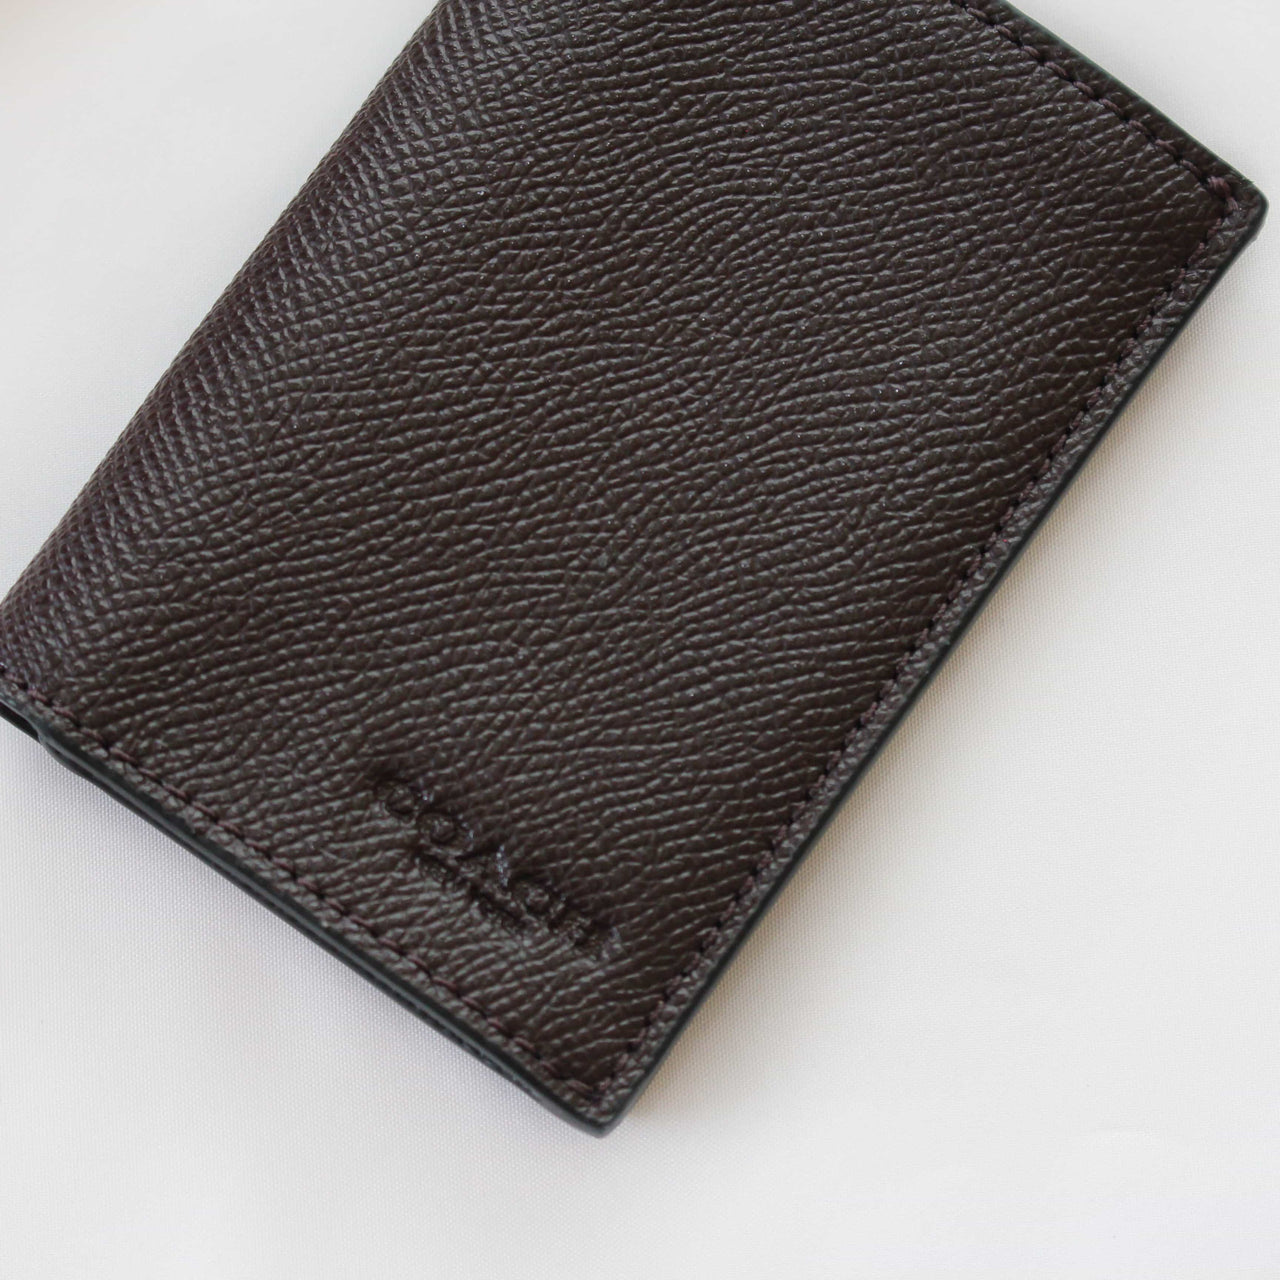 COACH BIFOLD CARD CASE IN CROSSGRAIN LEATHER - Lovely Madness